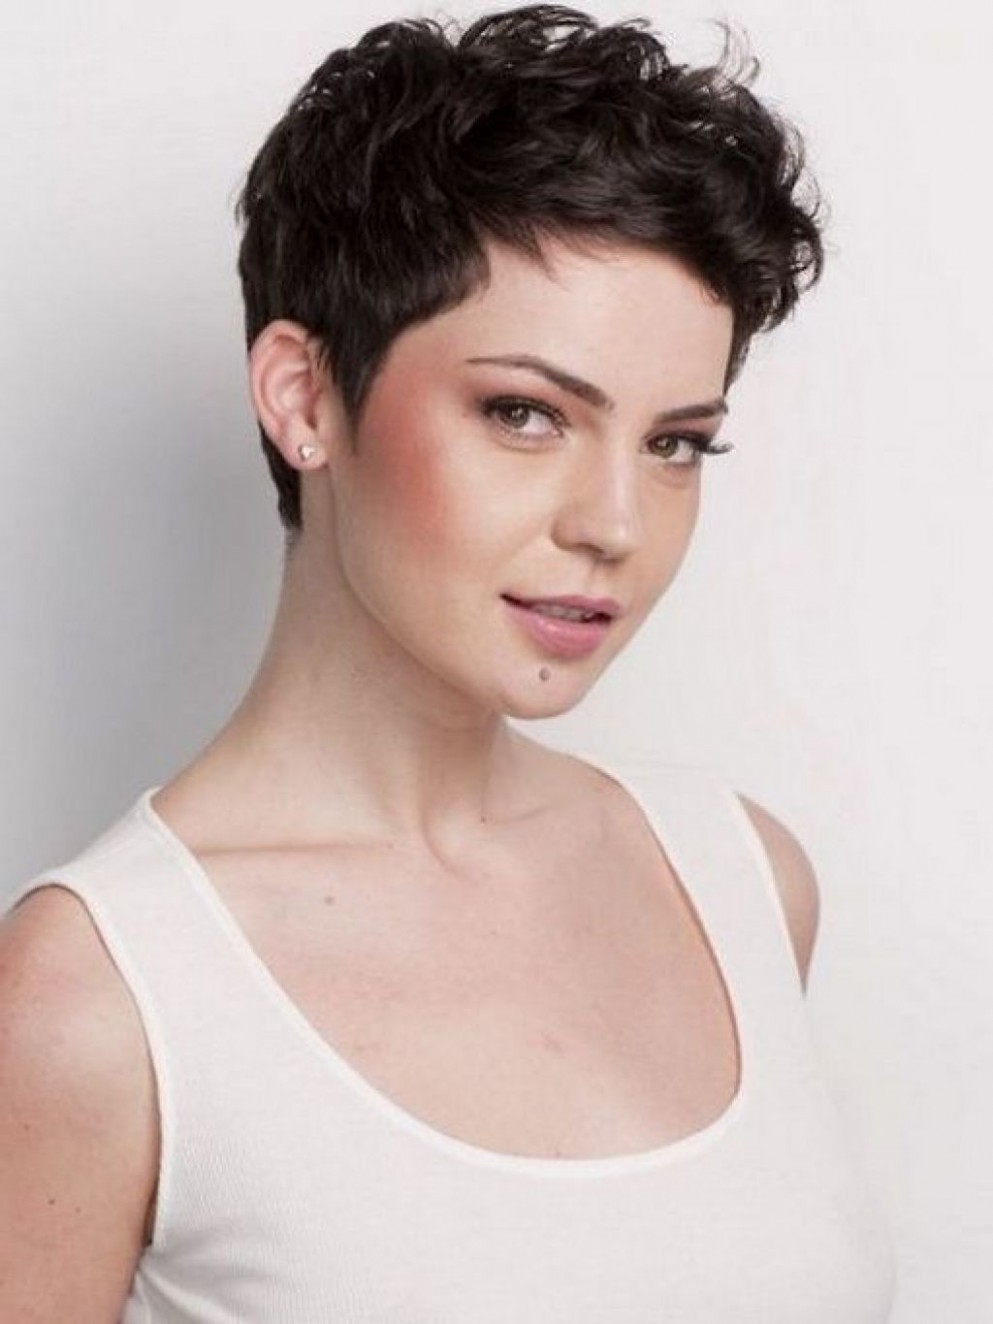 Pin On Short Pixie Haircuts Pixie Cut For Thick Curly Hair